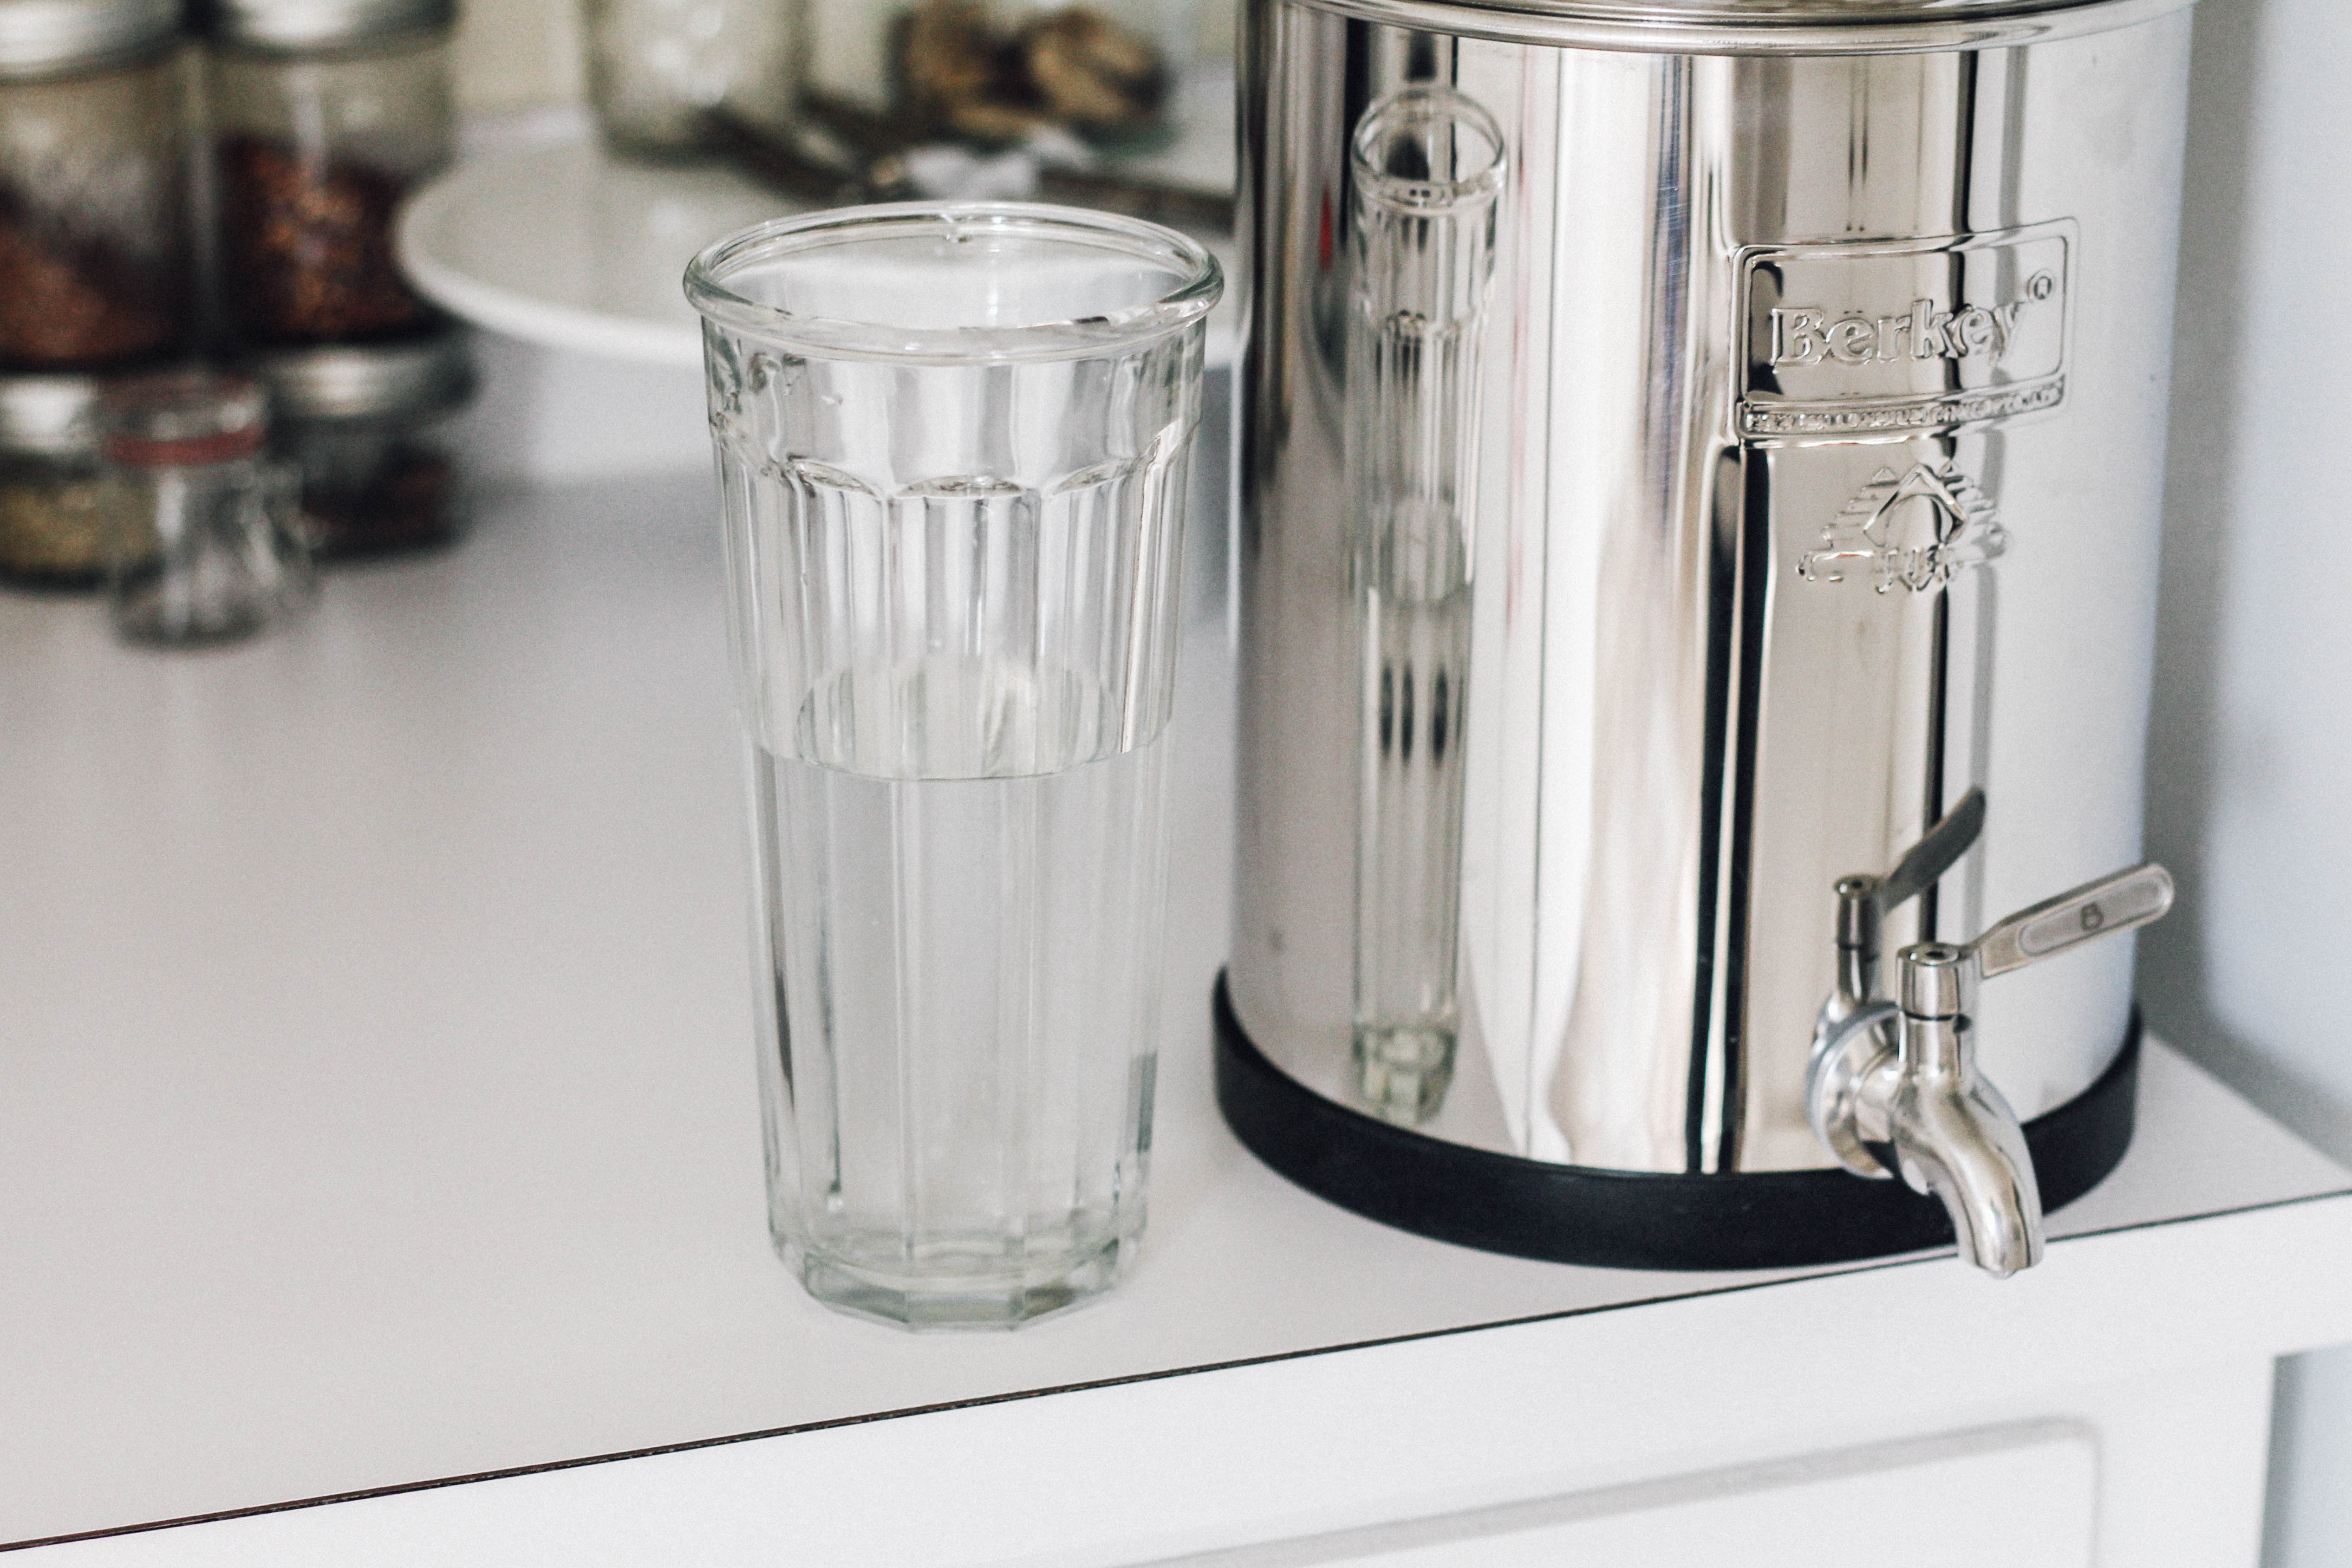 THE BERKEY WATER FILTER AND WHY I LOVE IT